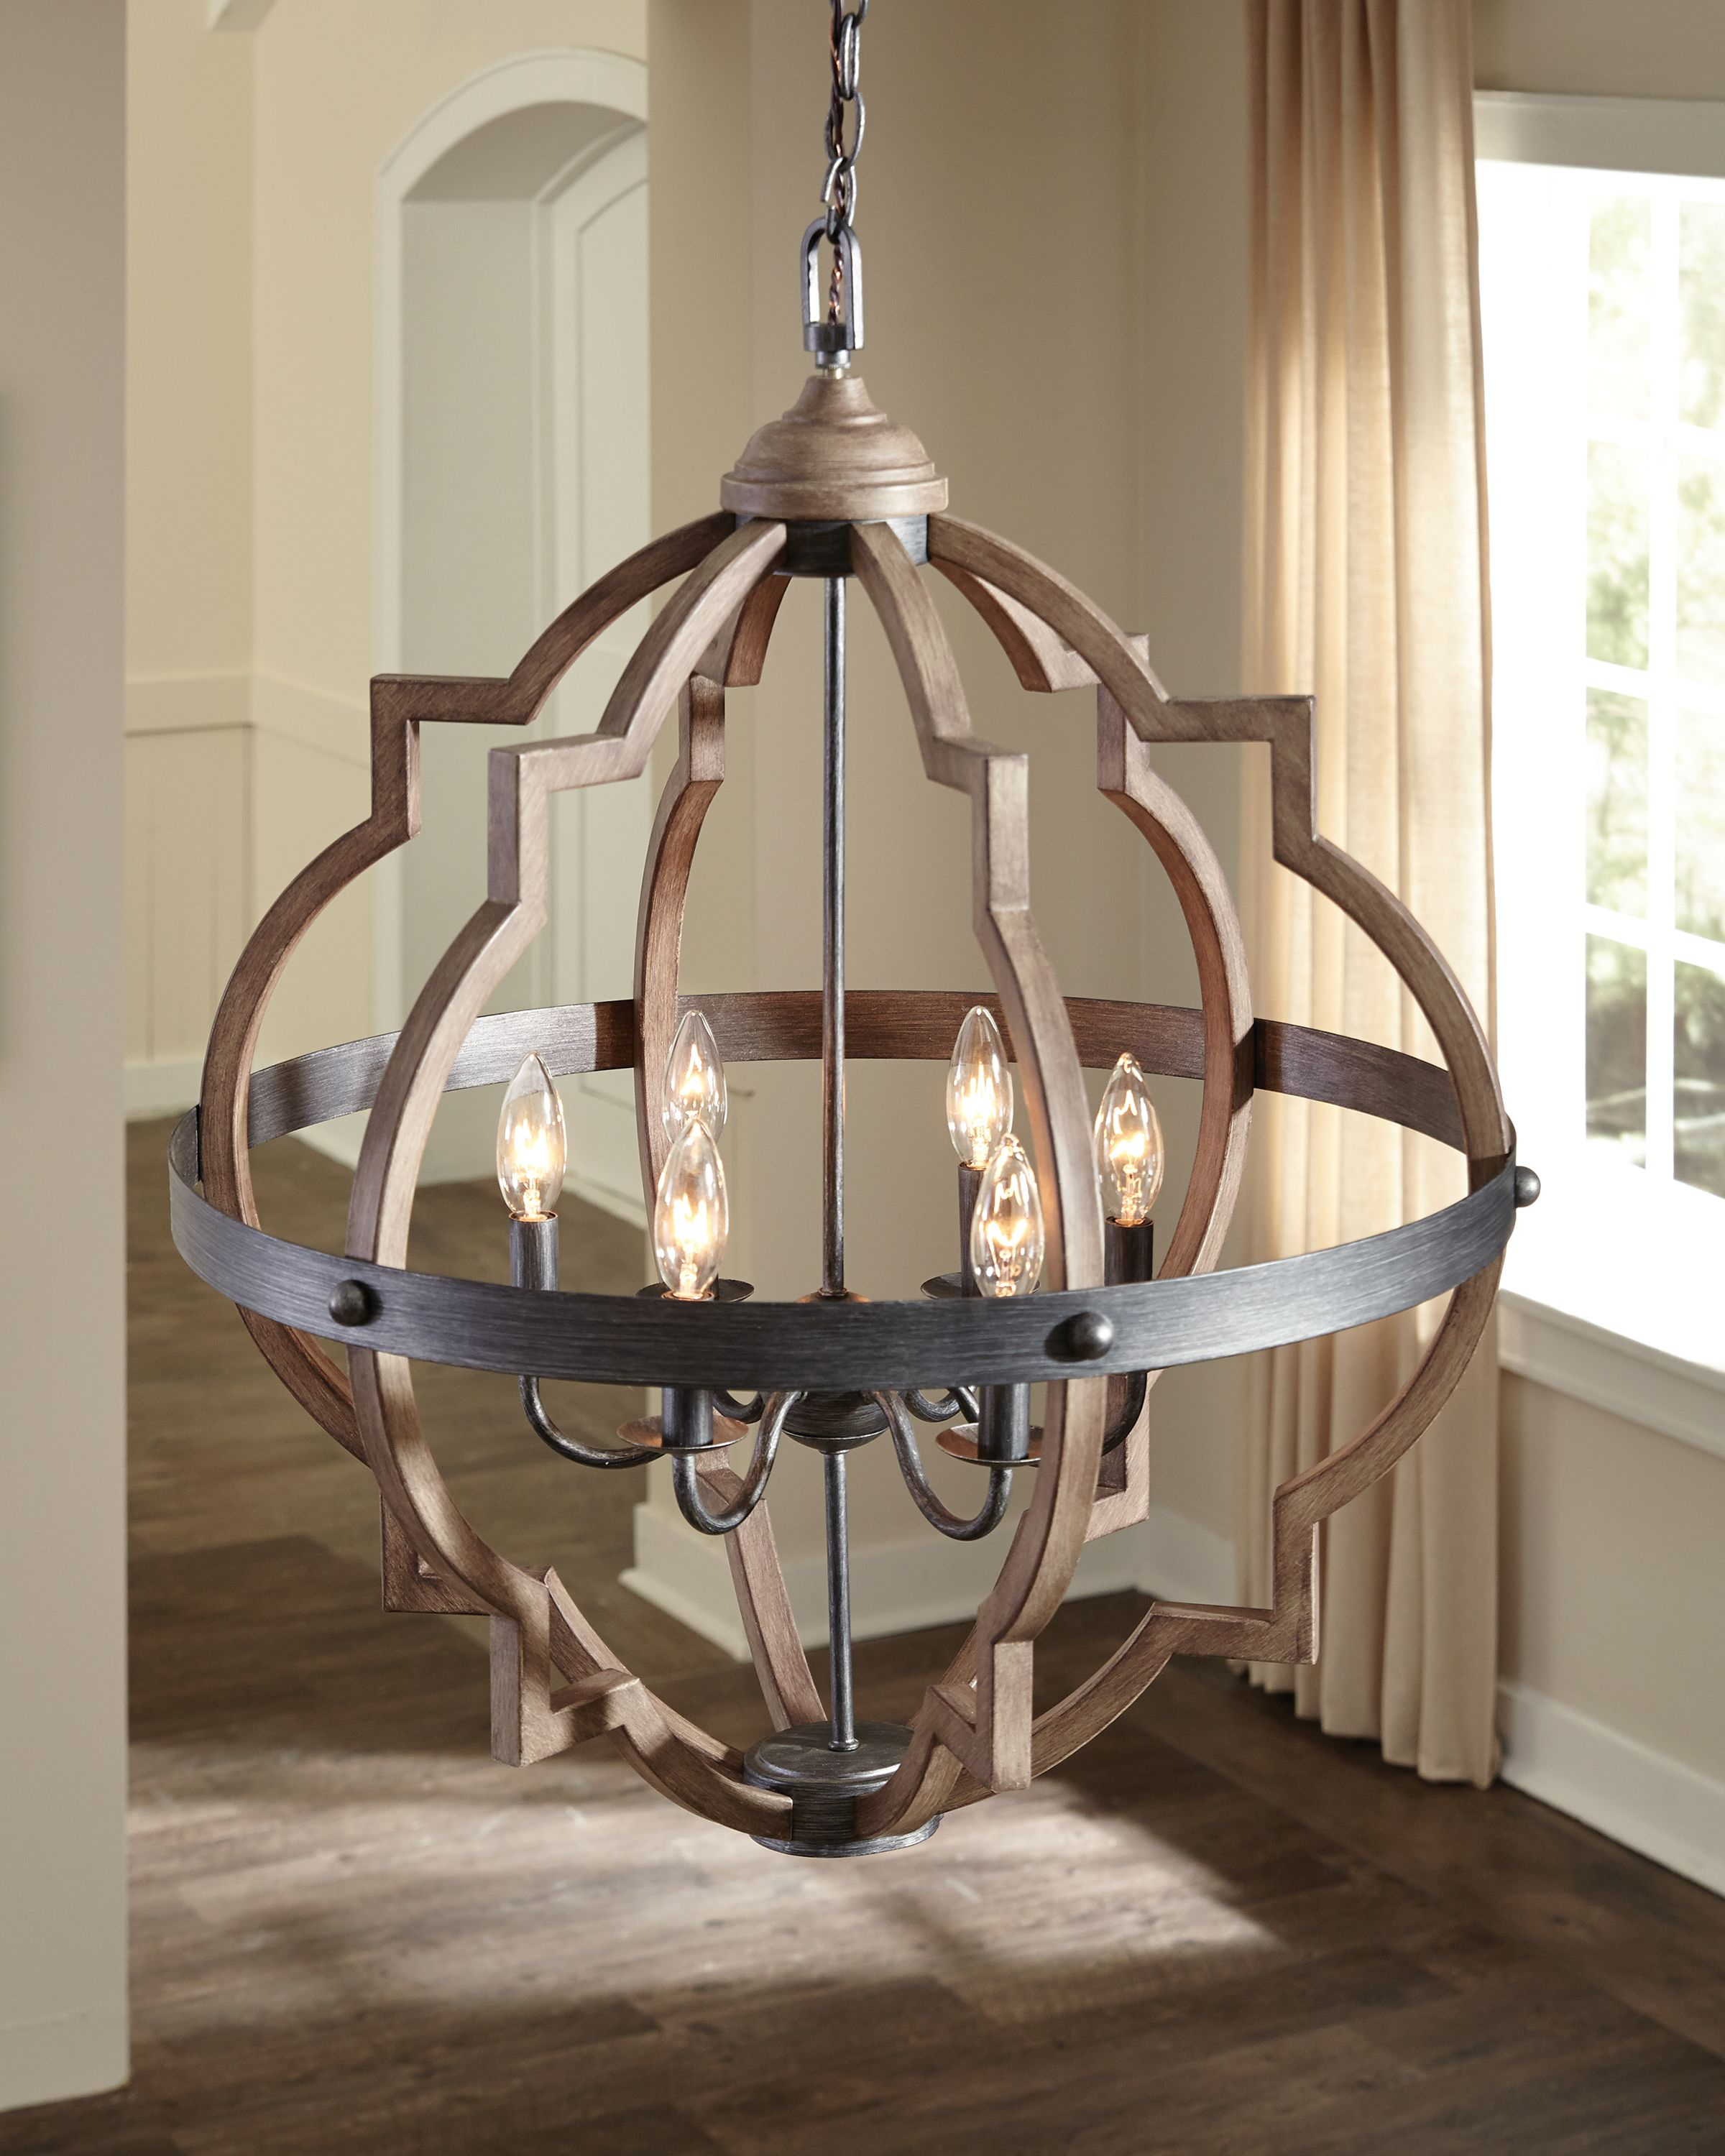 Best and Newest The Transitional Socorro Lighting Collectionsea Gull with Bennington 4-Light Candle Style Chandeliers